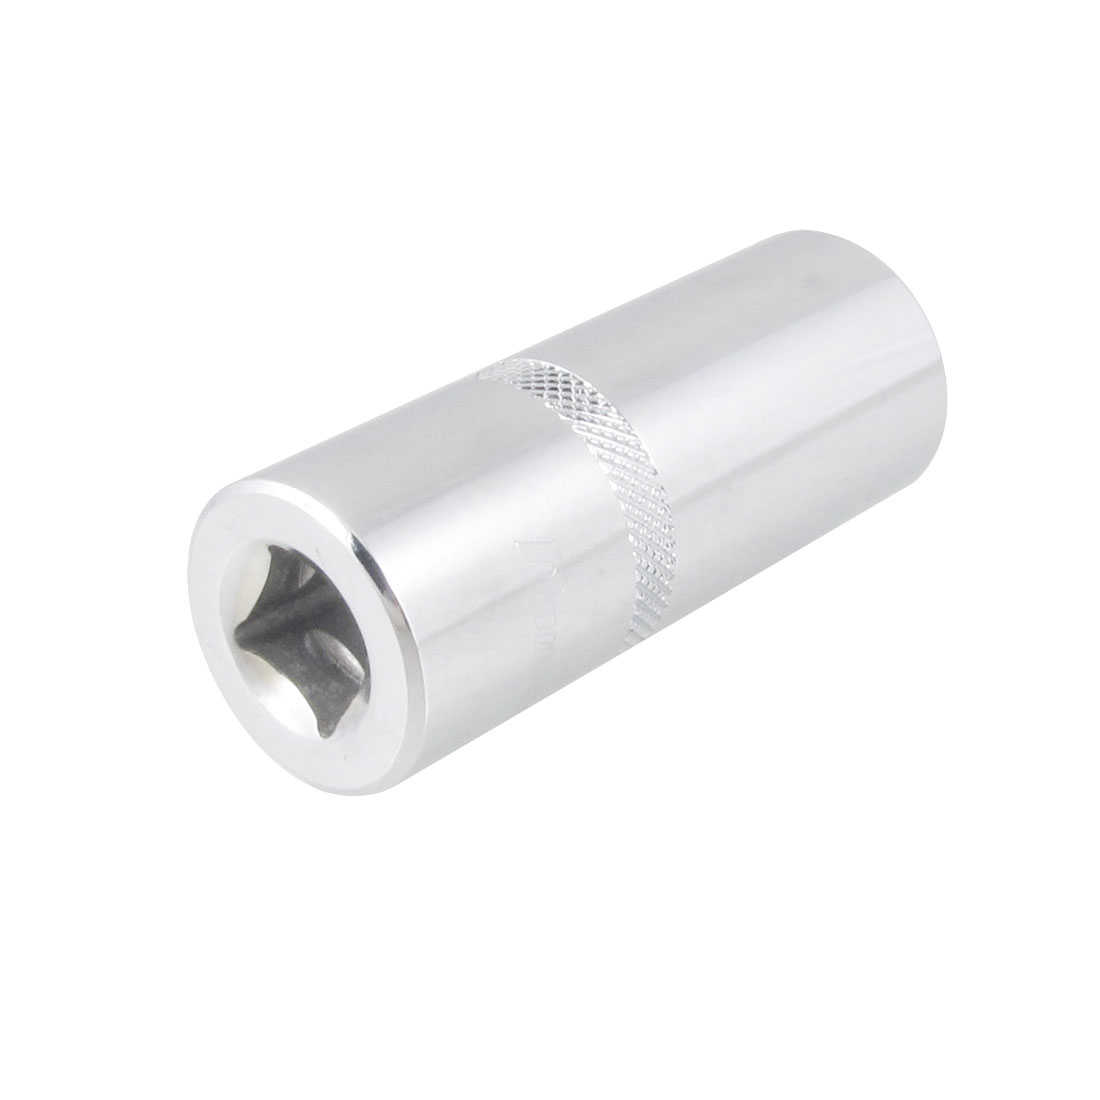 Unique Bargains Silver Tone Chrome-vanadium Steel 1/2' Drive 22mm 6 Points Hex Socket Cylinder